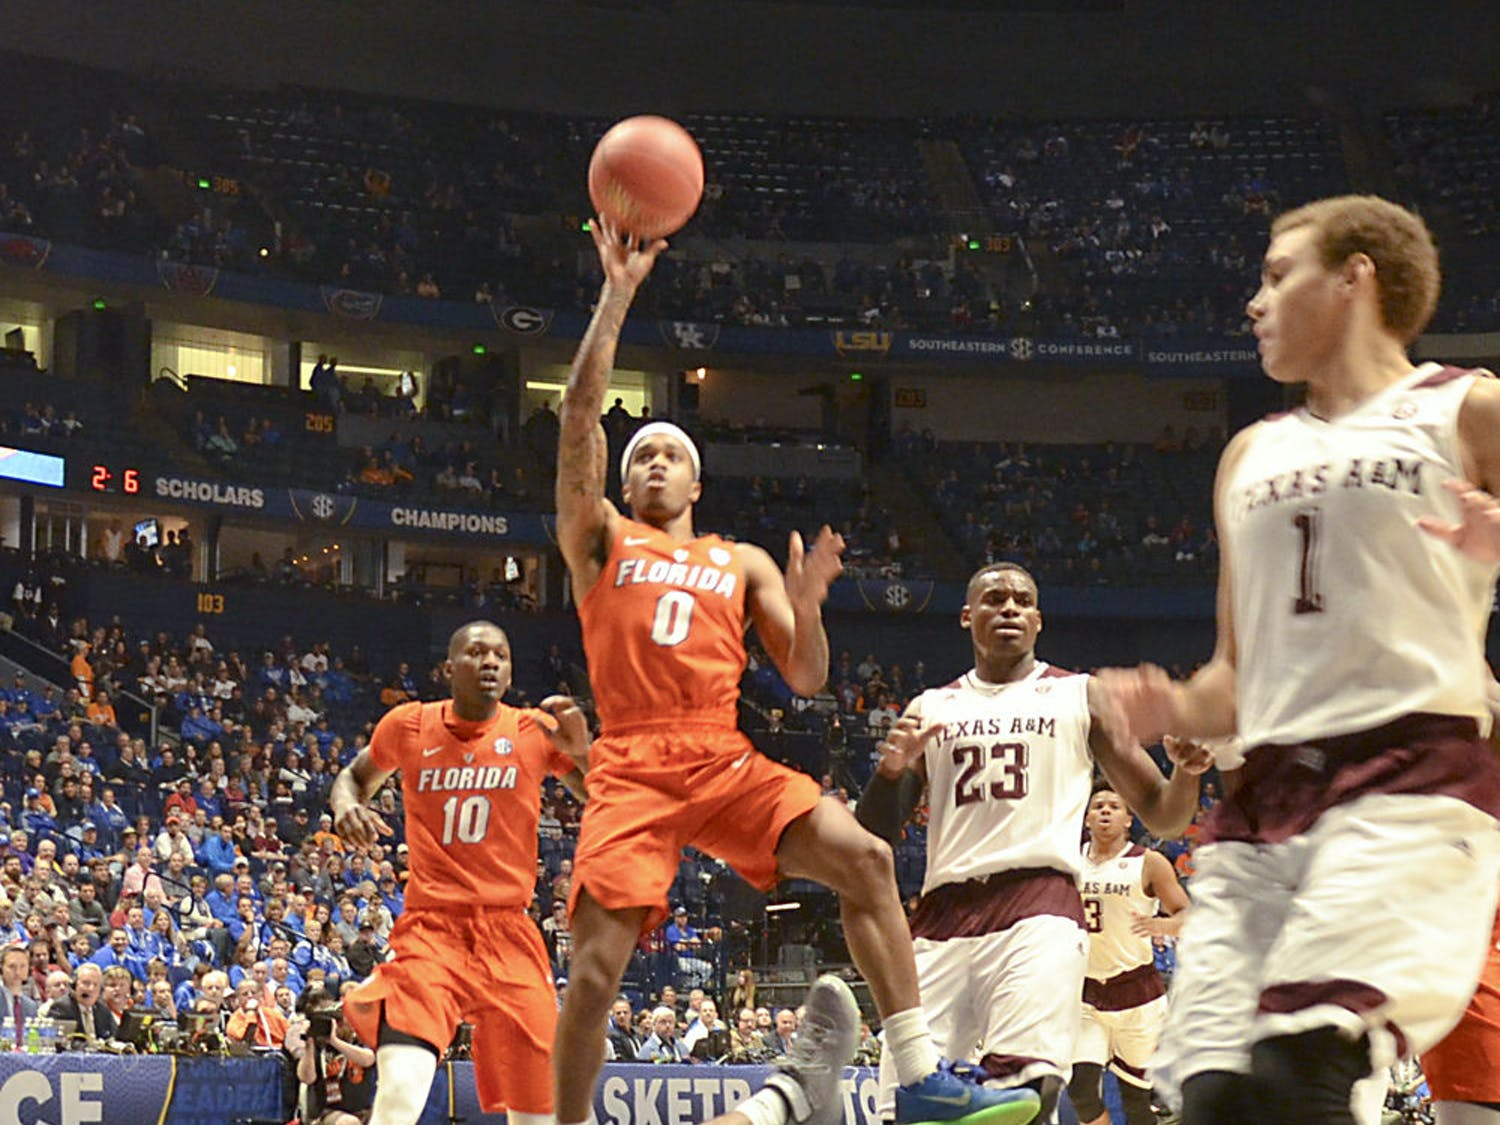 Kasey Hill attempts a floater during Florida's 72-66 loss to Texas A&M in the SEC Tournament in Nashville on March 11, 2016.